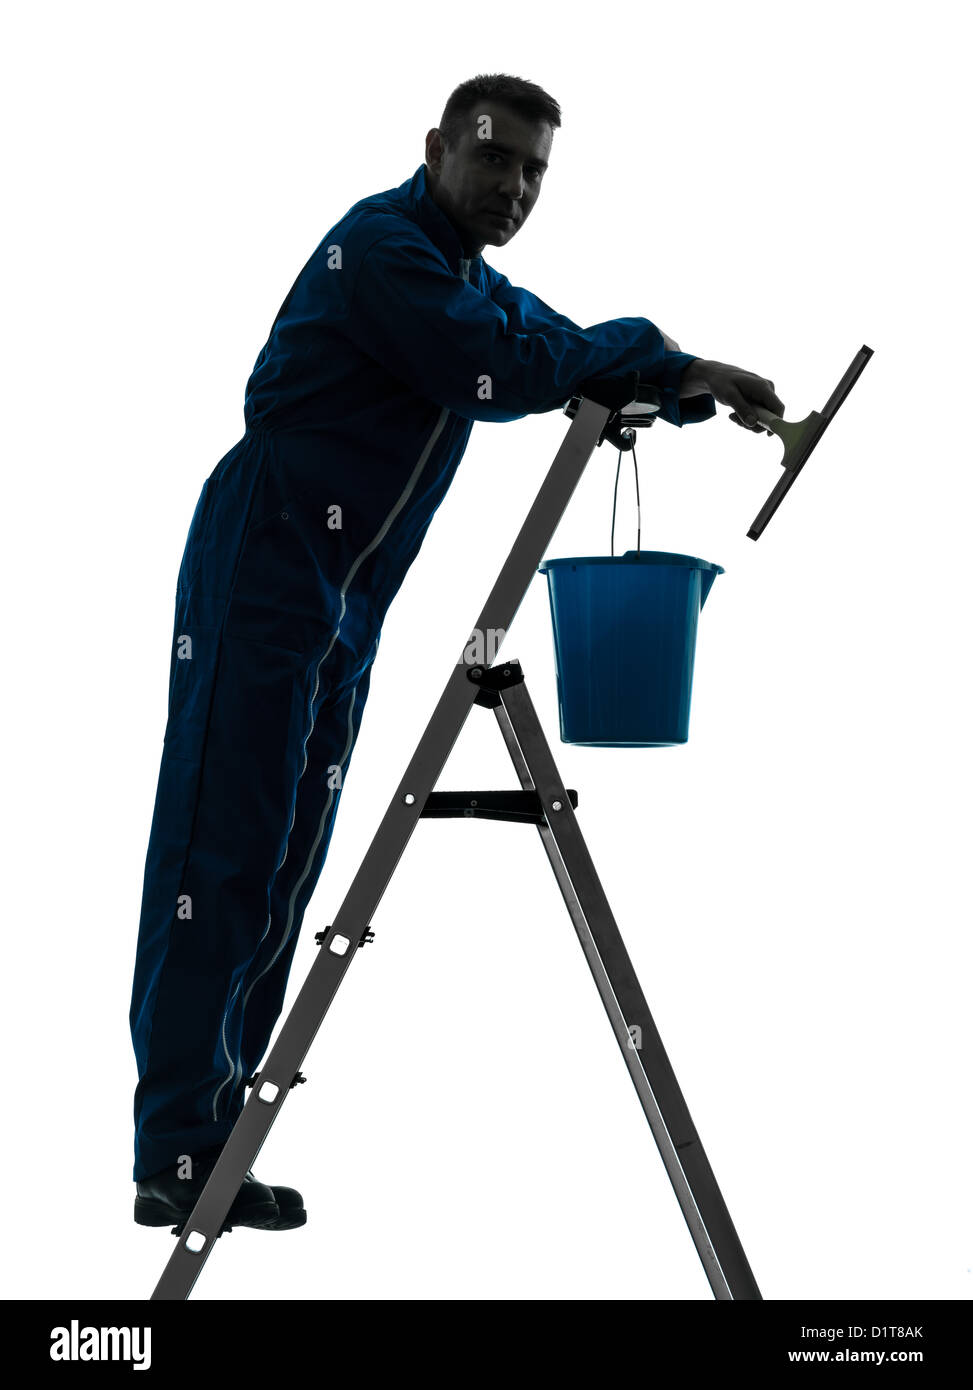 janitor stock photos janitor stock images alamy one man house worker janitor cleaning window cleaner silhouette in studio on white background stock